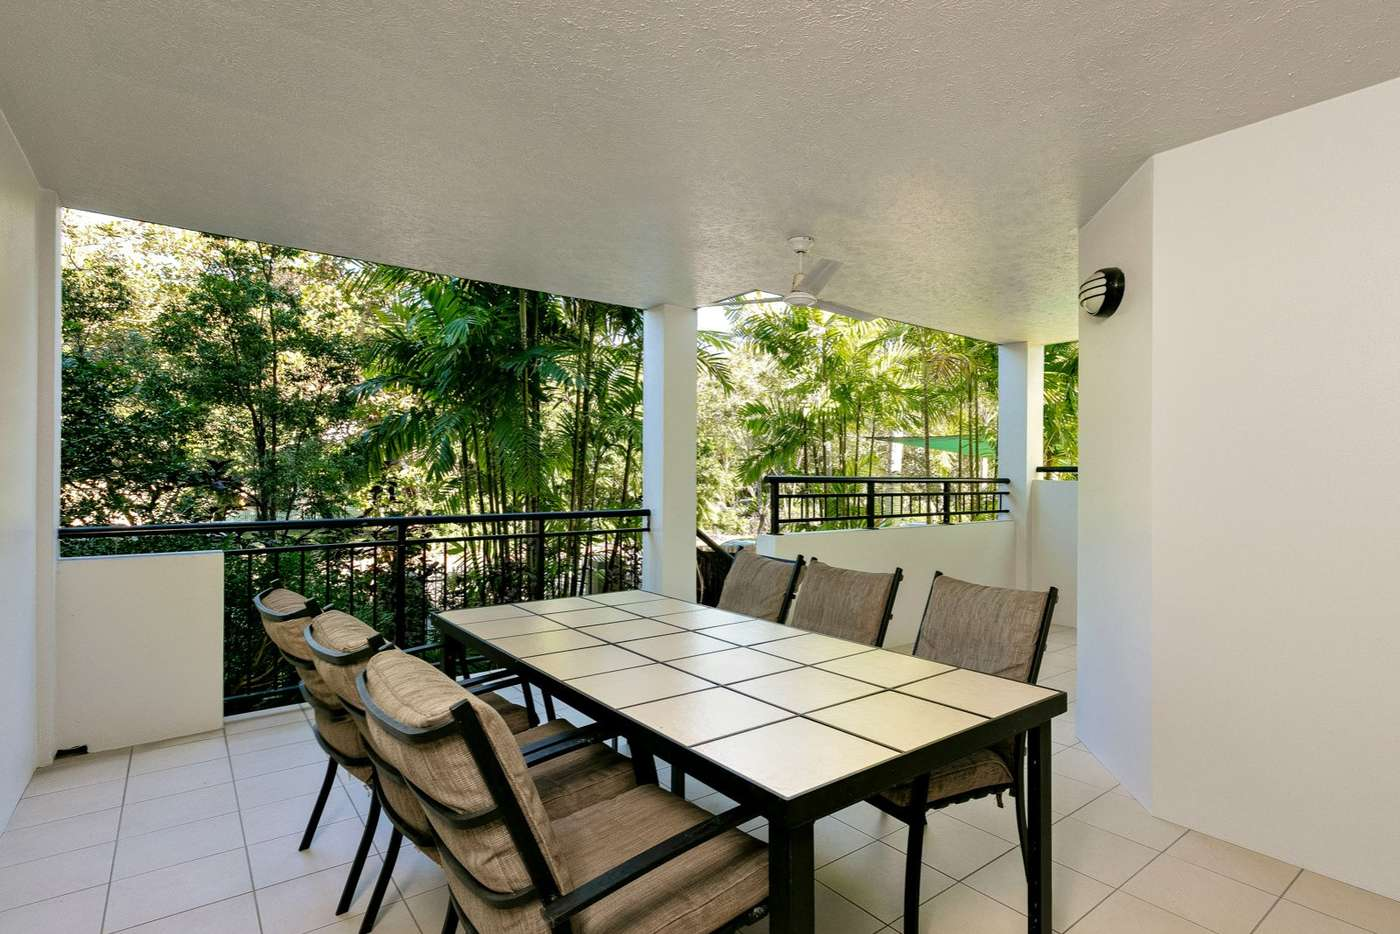 Main view of Homely unit listing, 1/376 Severin Street, Parramatta Park QLD 4870